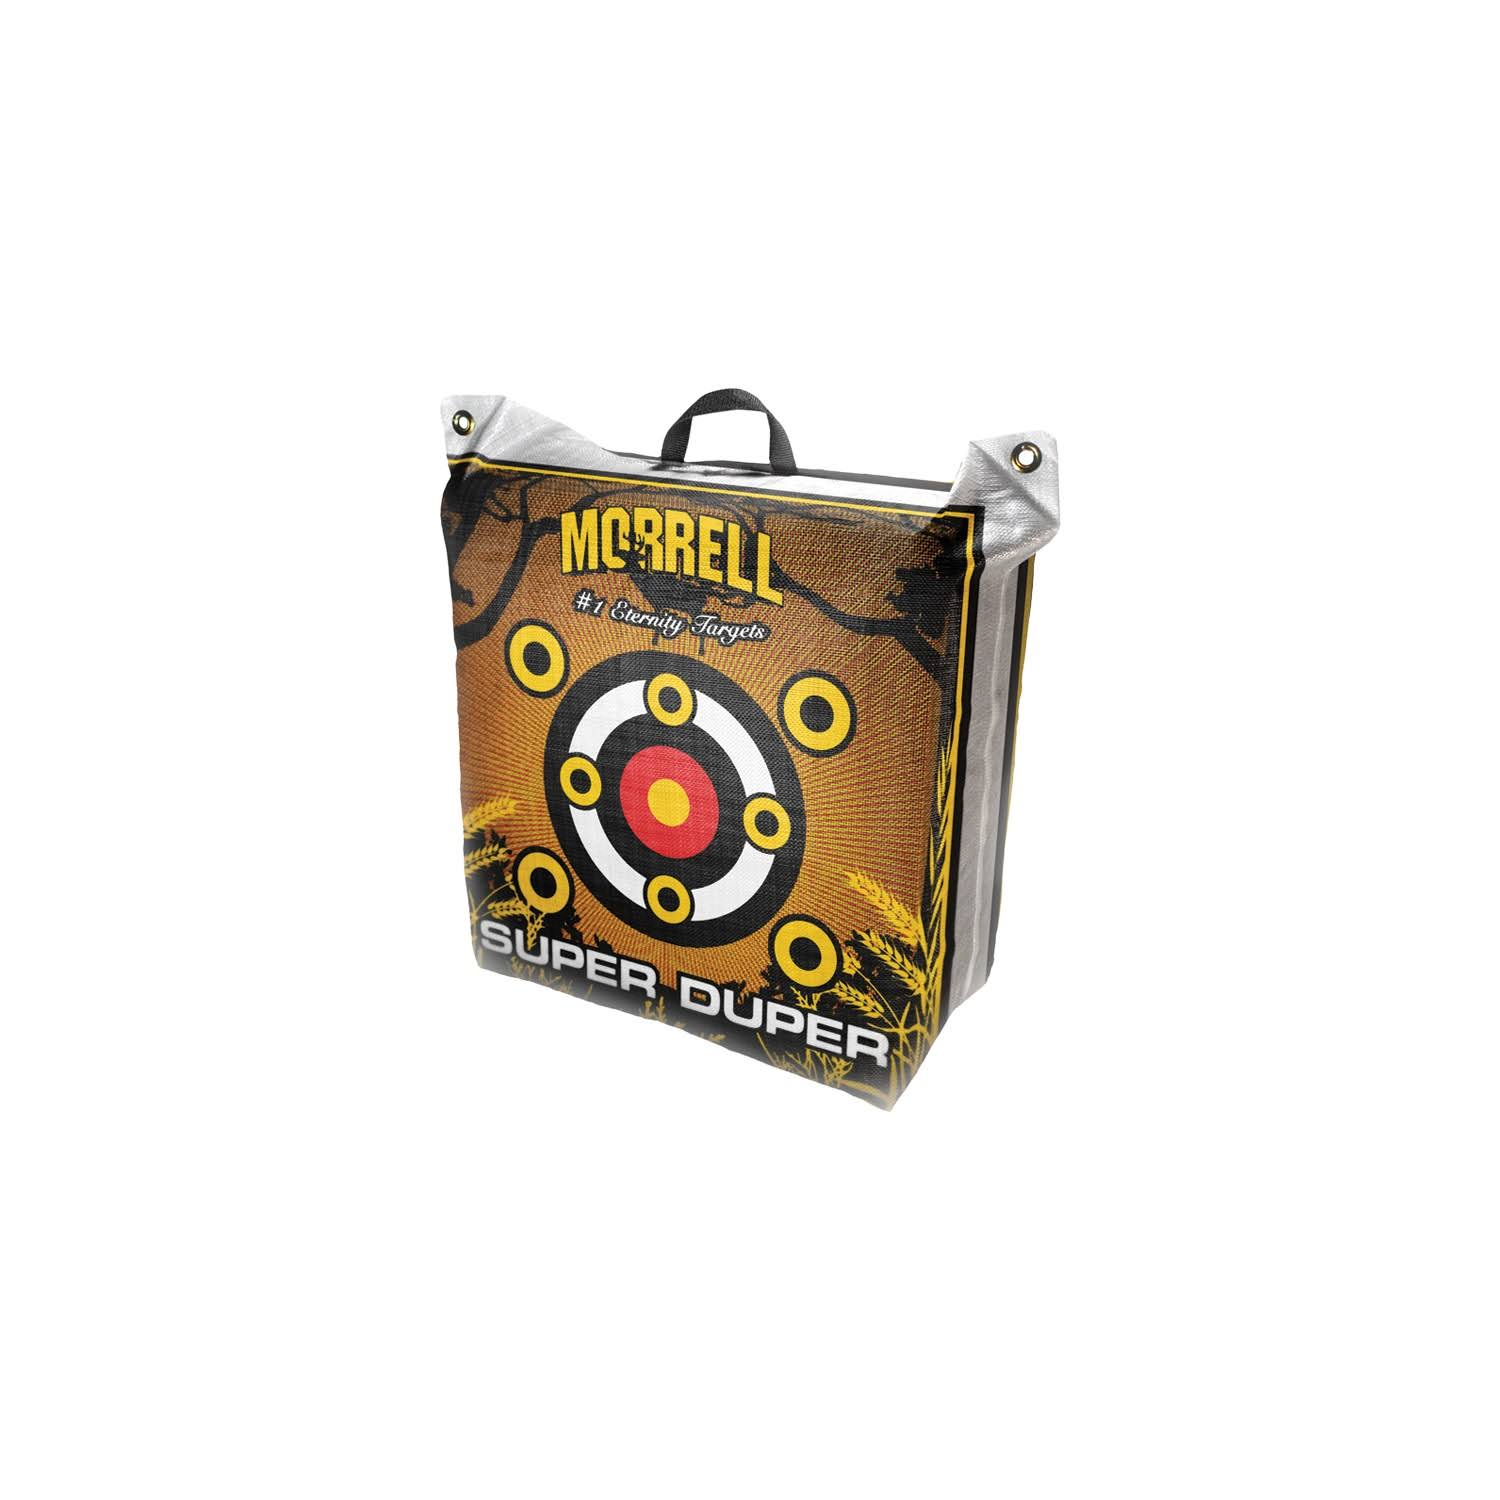 Morrell Targets Super Duper Field Point Archery Target